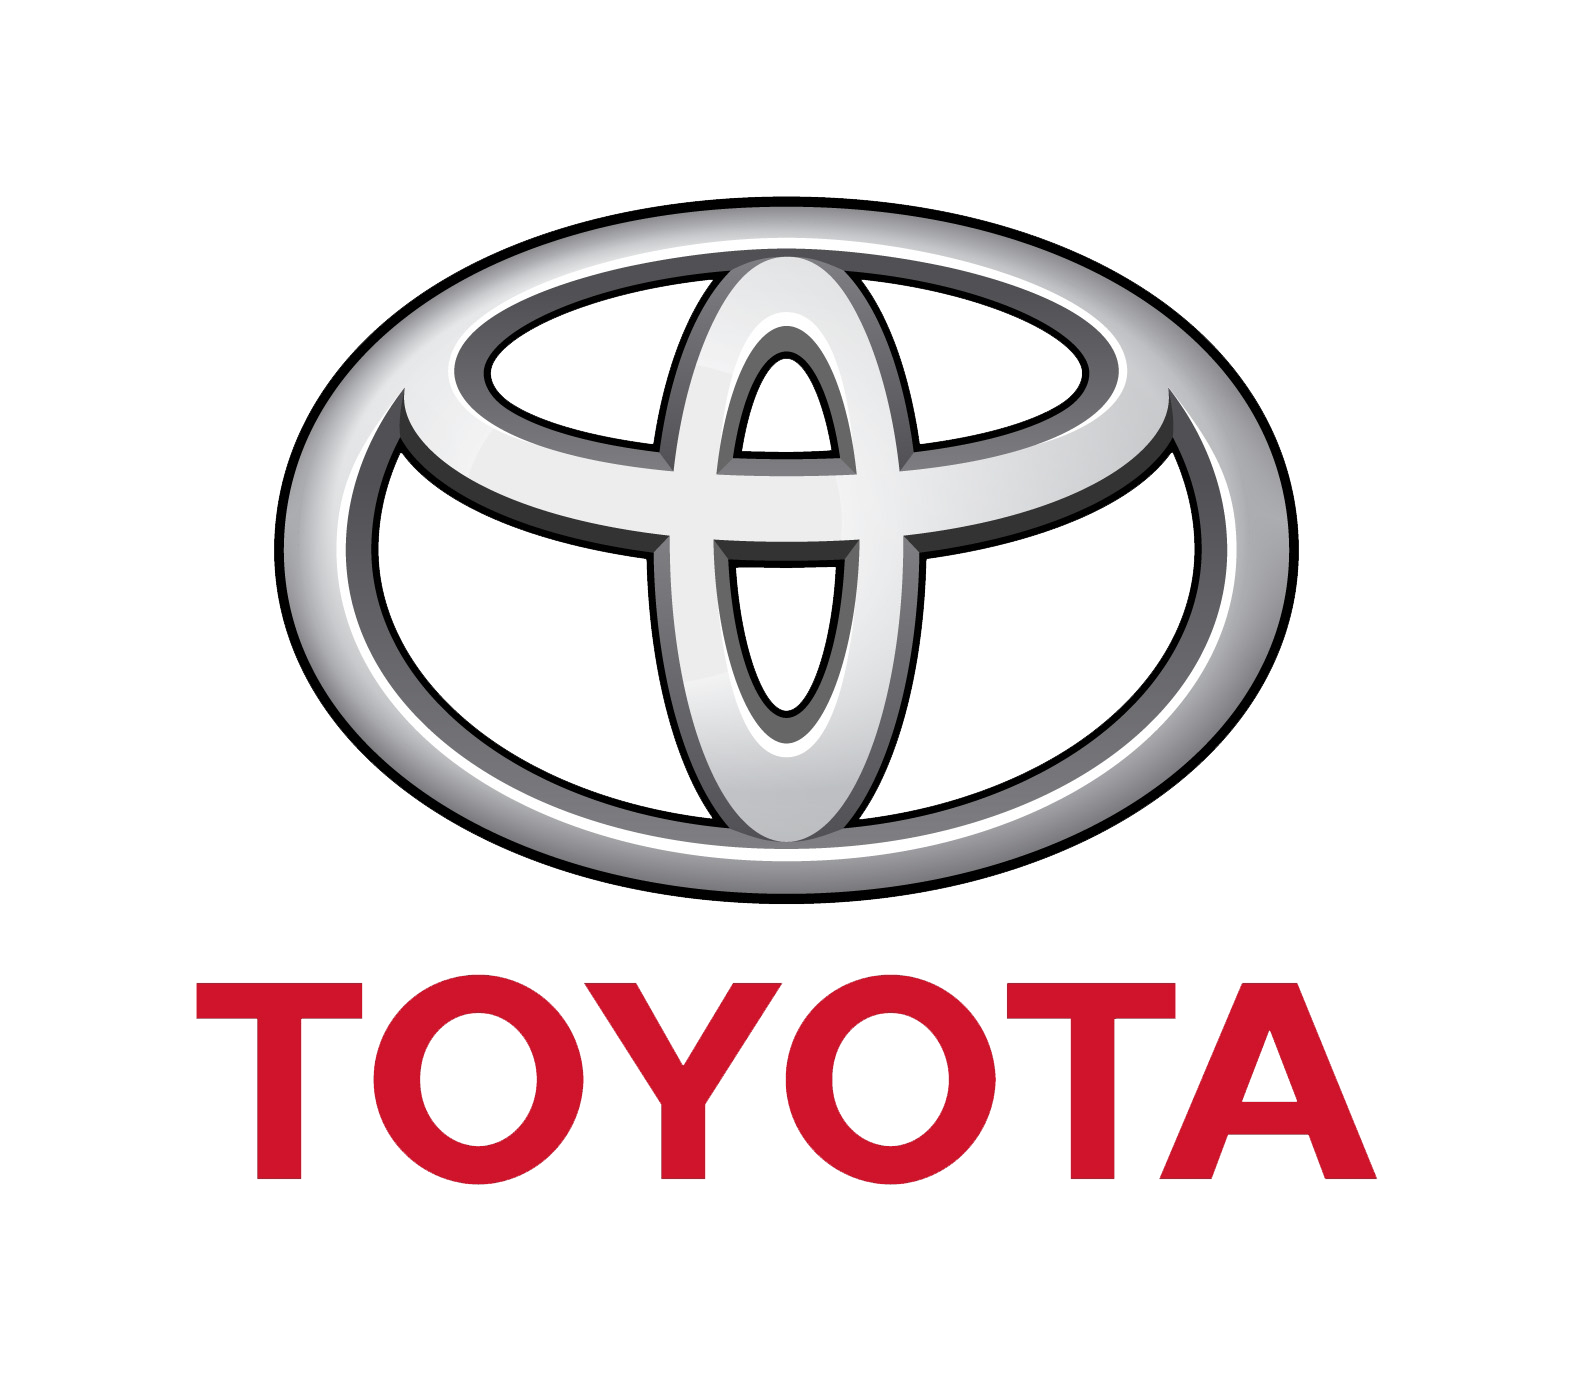 download-toyota-logo-png-images-transparent-gallery-advertisement-1574.png